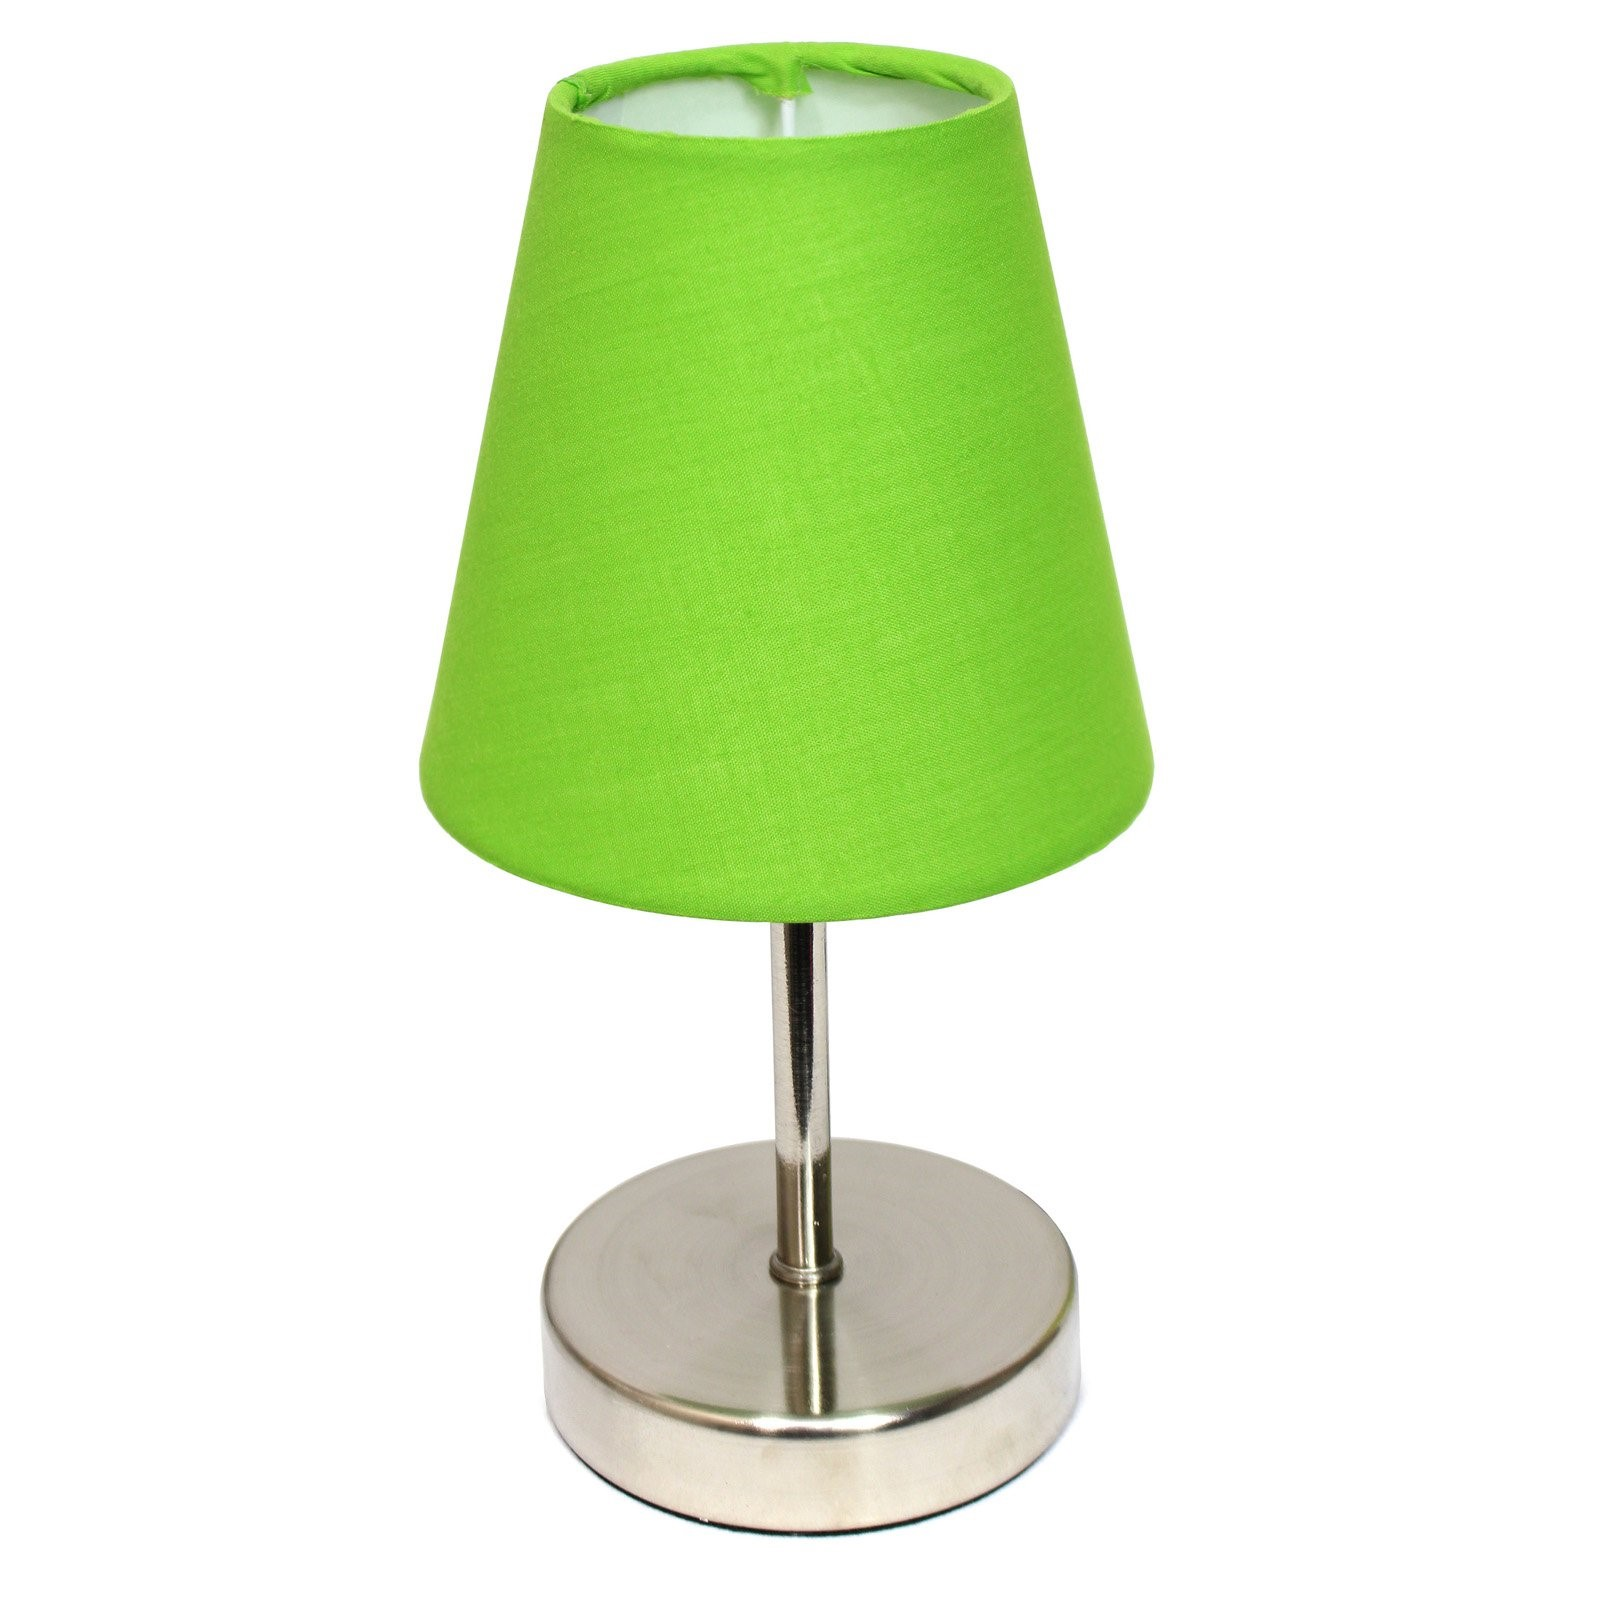 Simple Designs Sand Nickel Mini Basic Table Lamp with Fabric Shade by All the Rages Inc